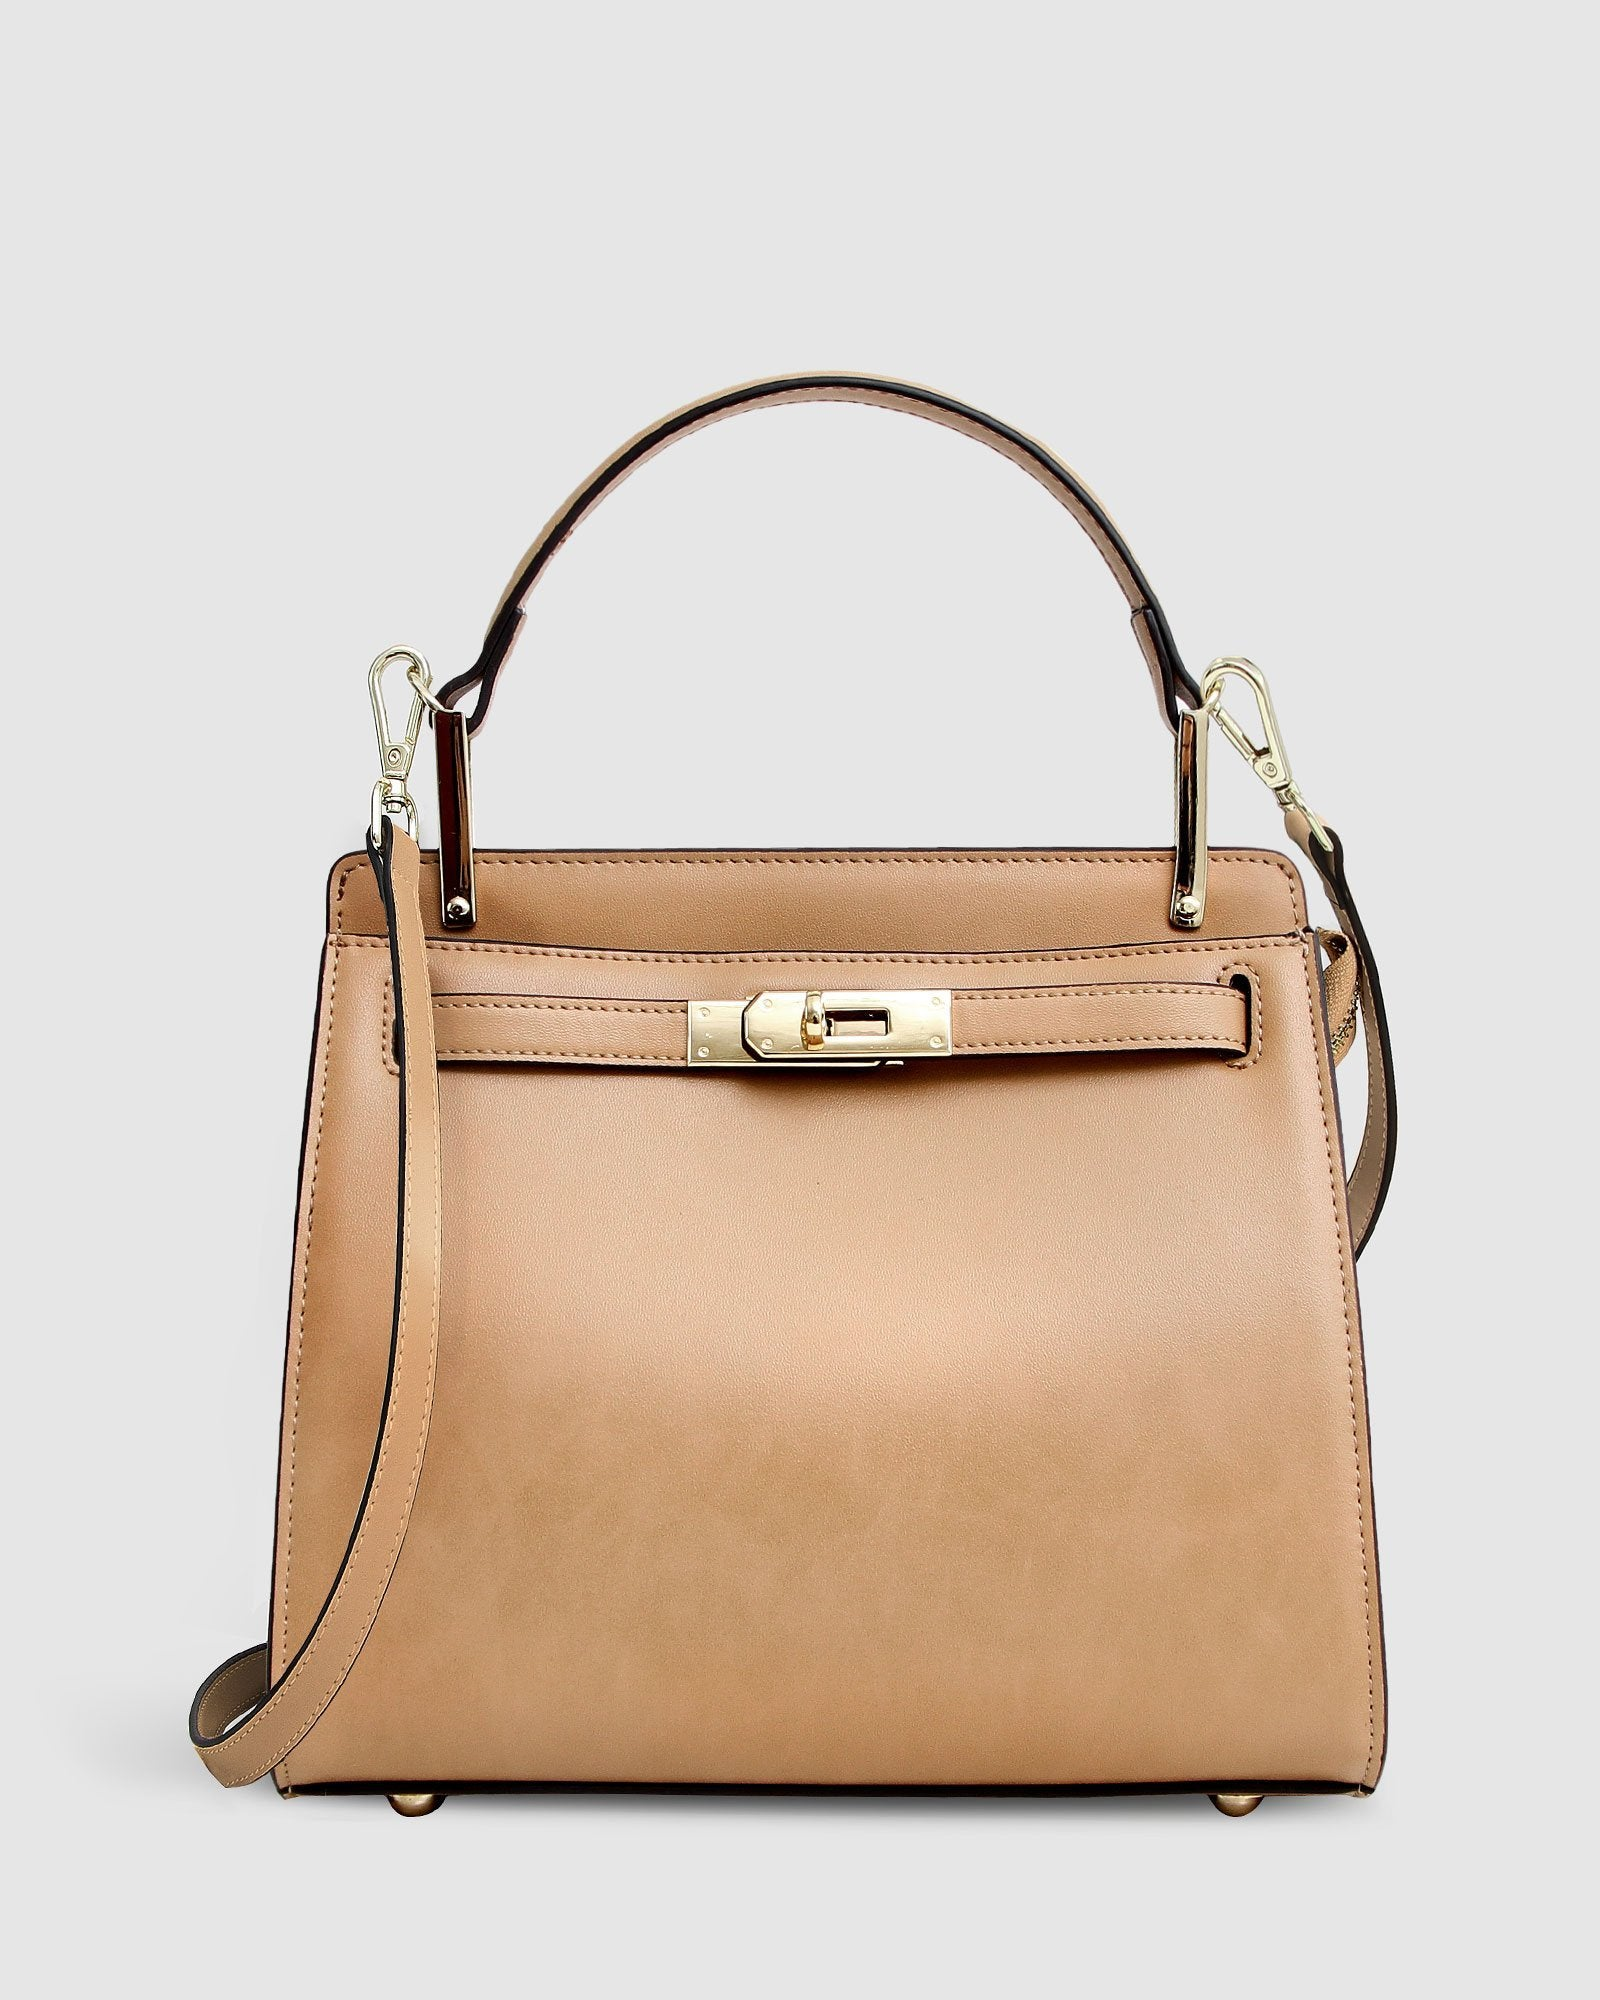 Simply Perfect Leather Cross-Body Bag - Camel